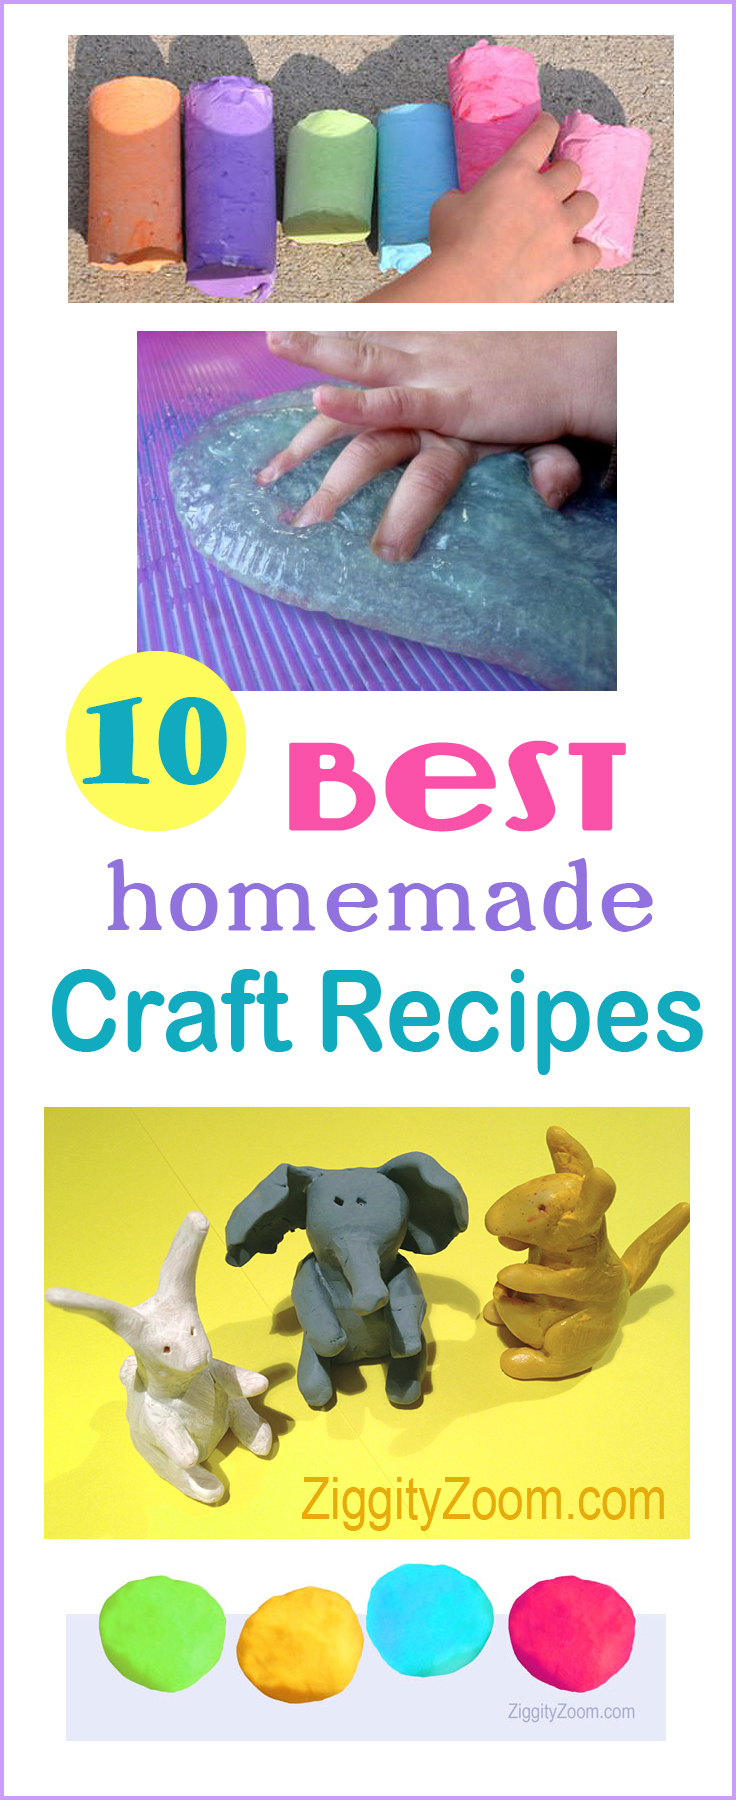 Best homemade craft recipes